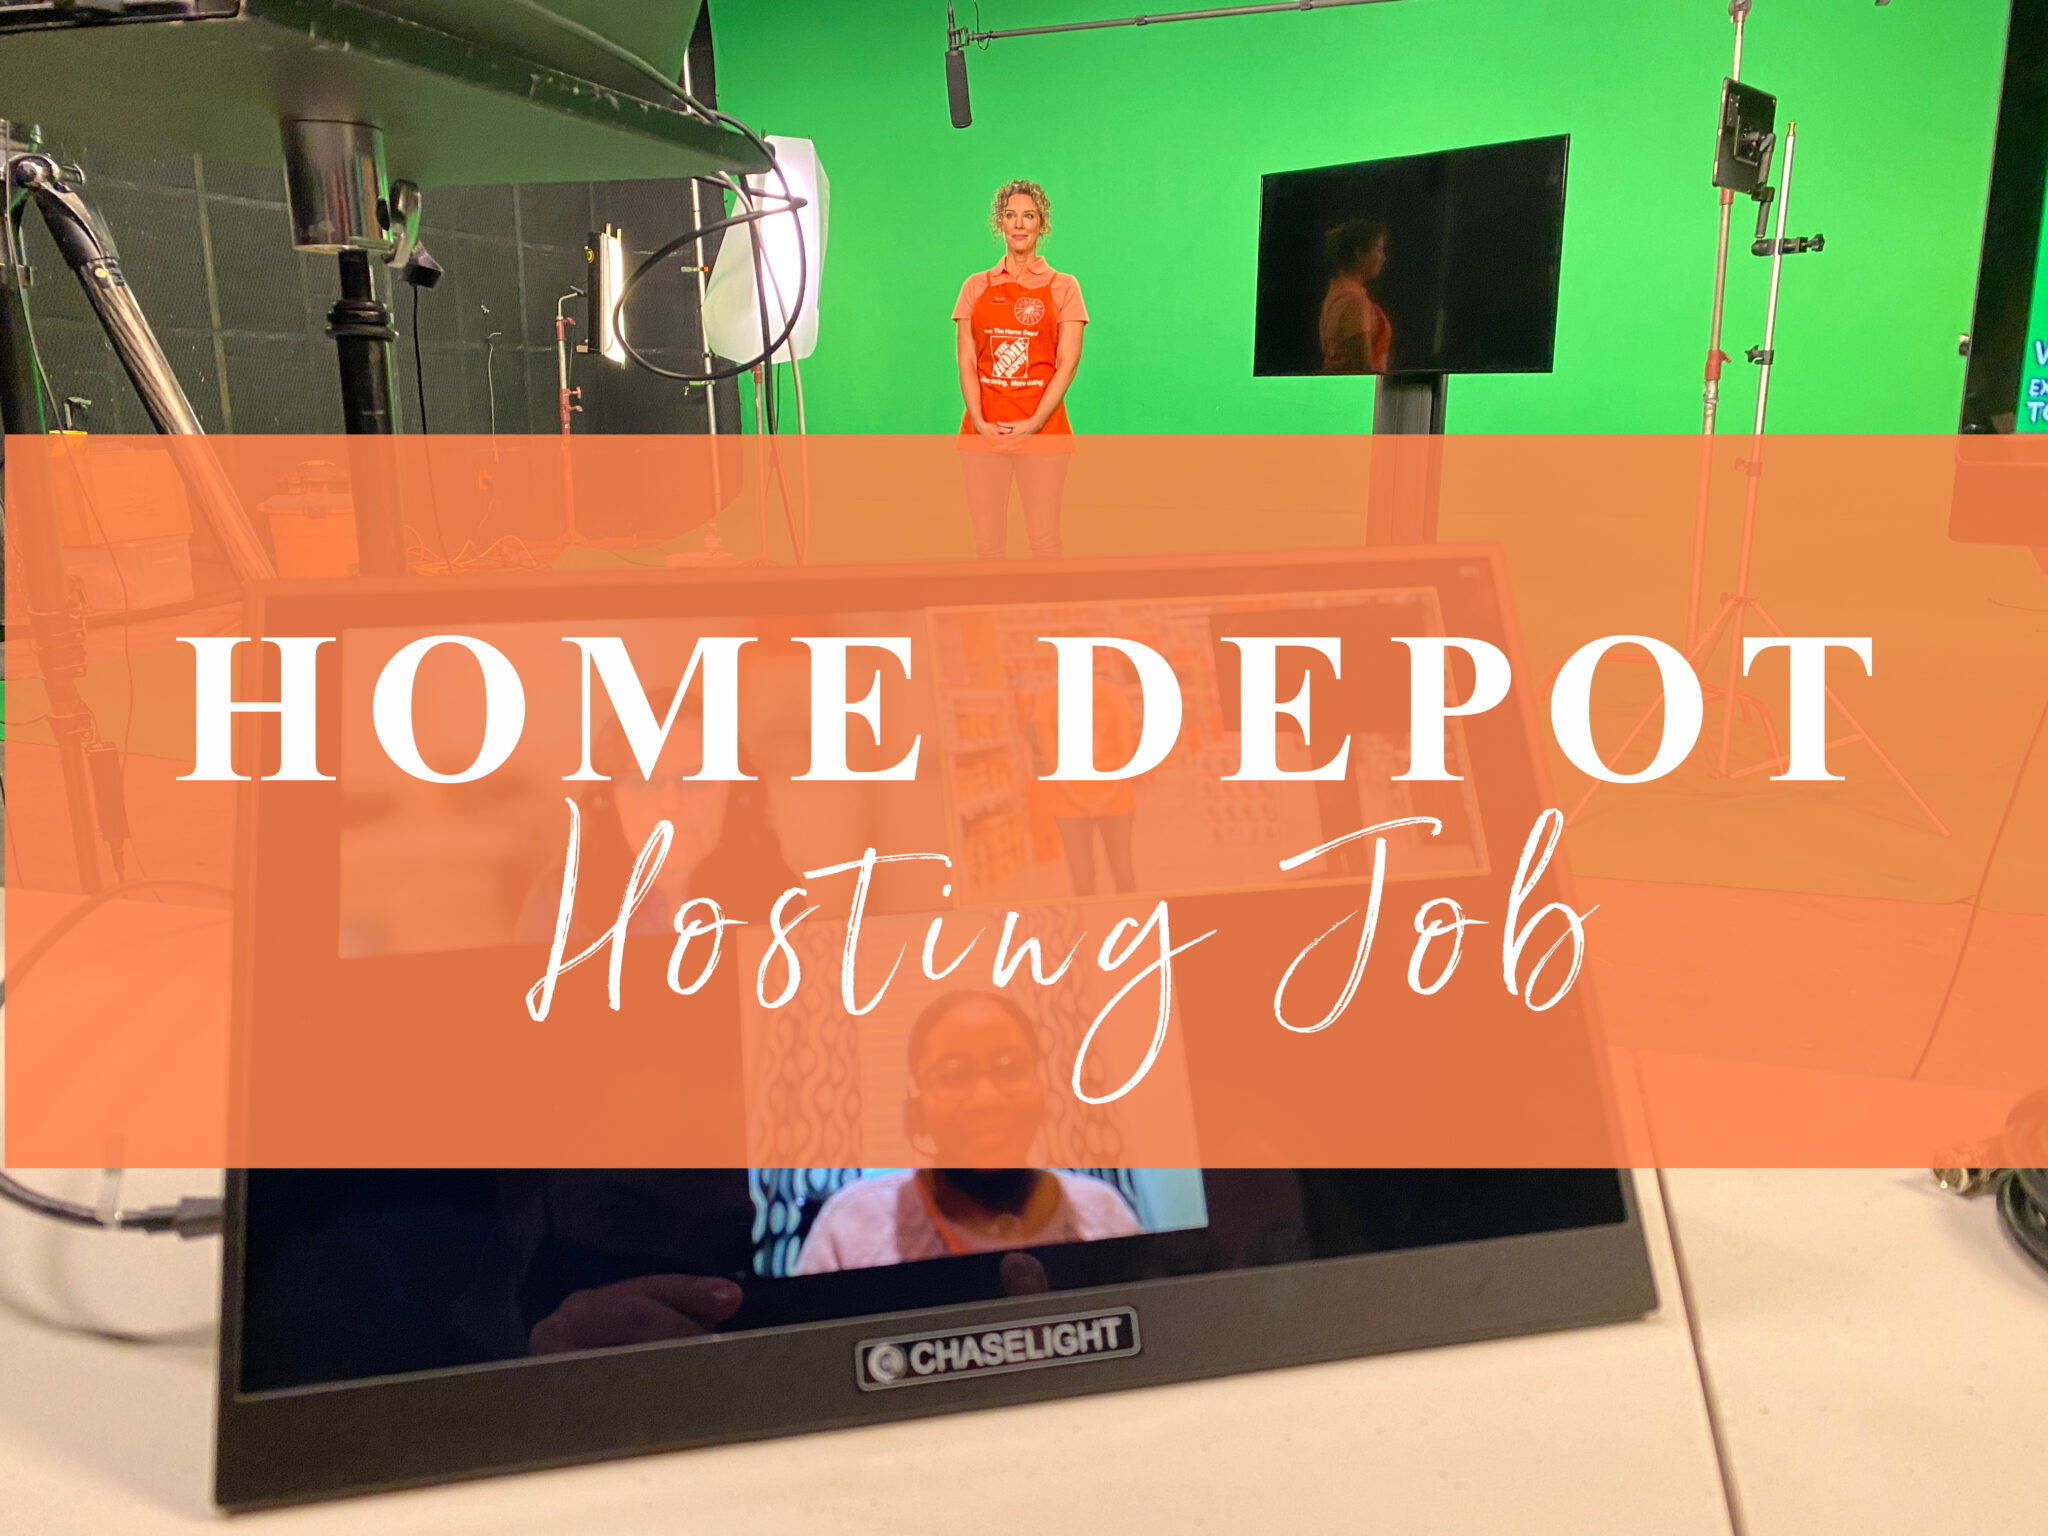 Home Depot Hosting Job